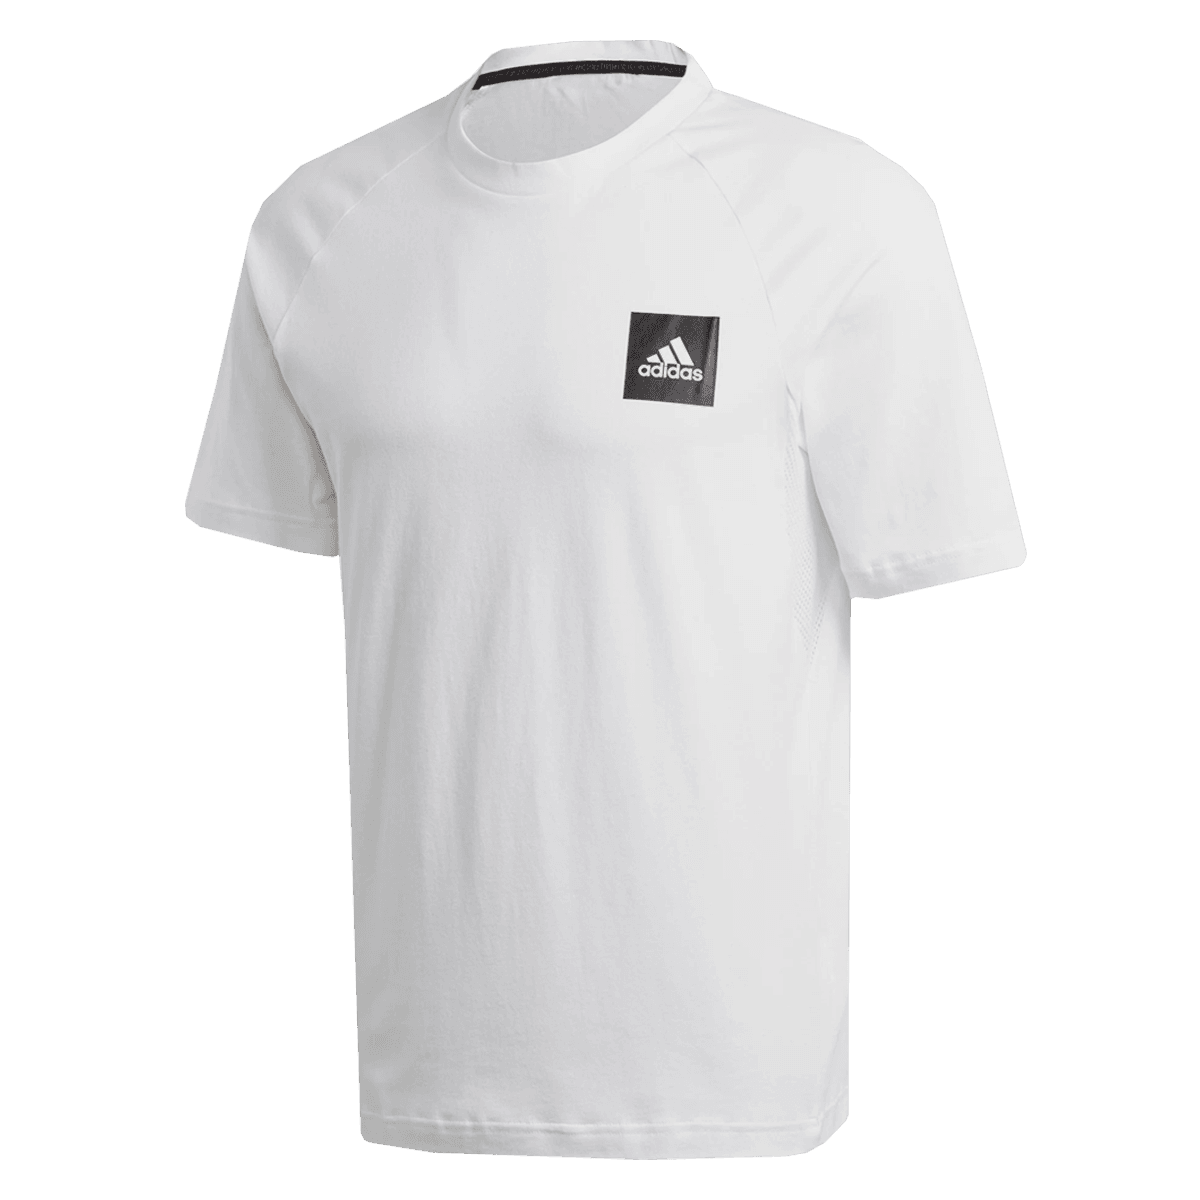 adidas T shirt Must Haves Stadium Tee witzwart Voetbal shop